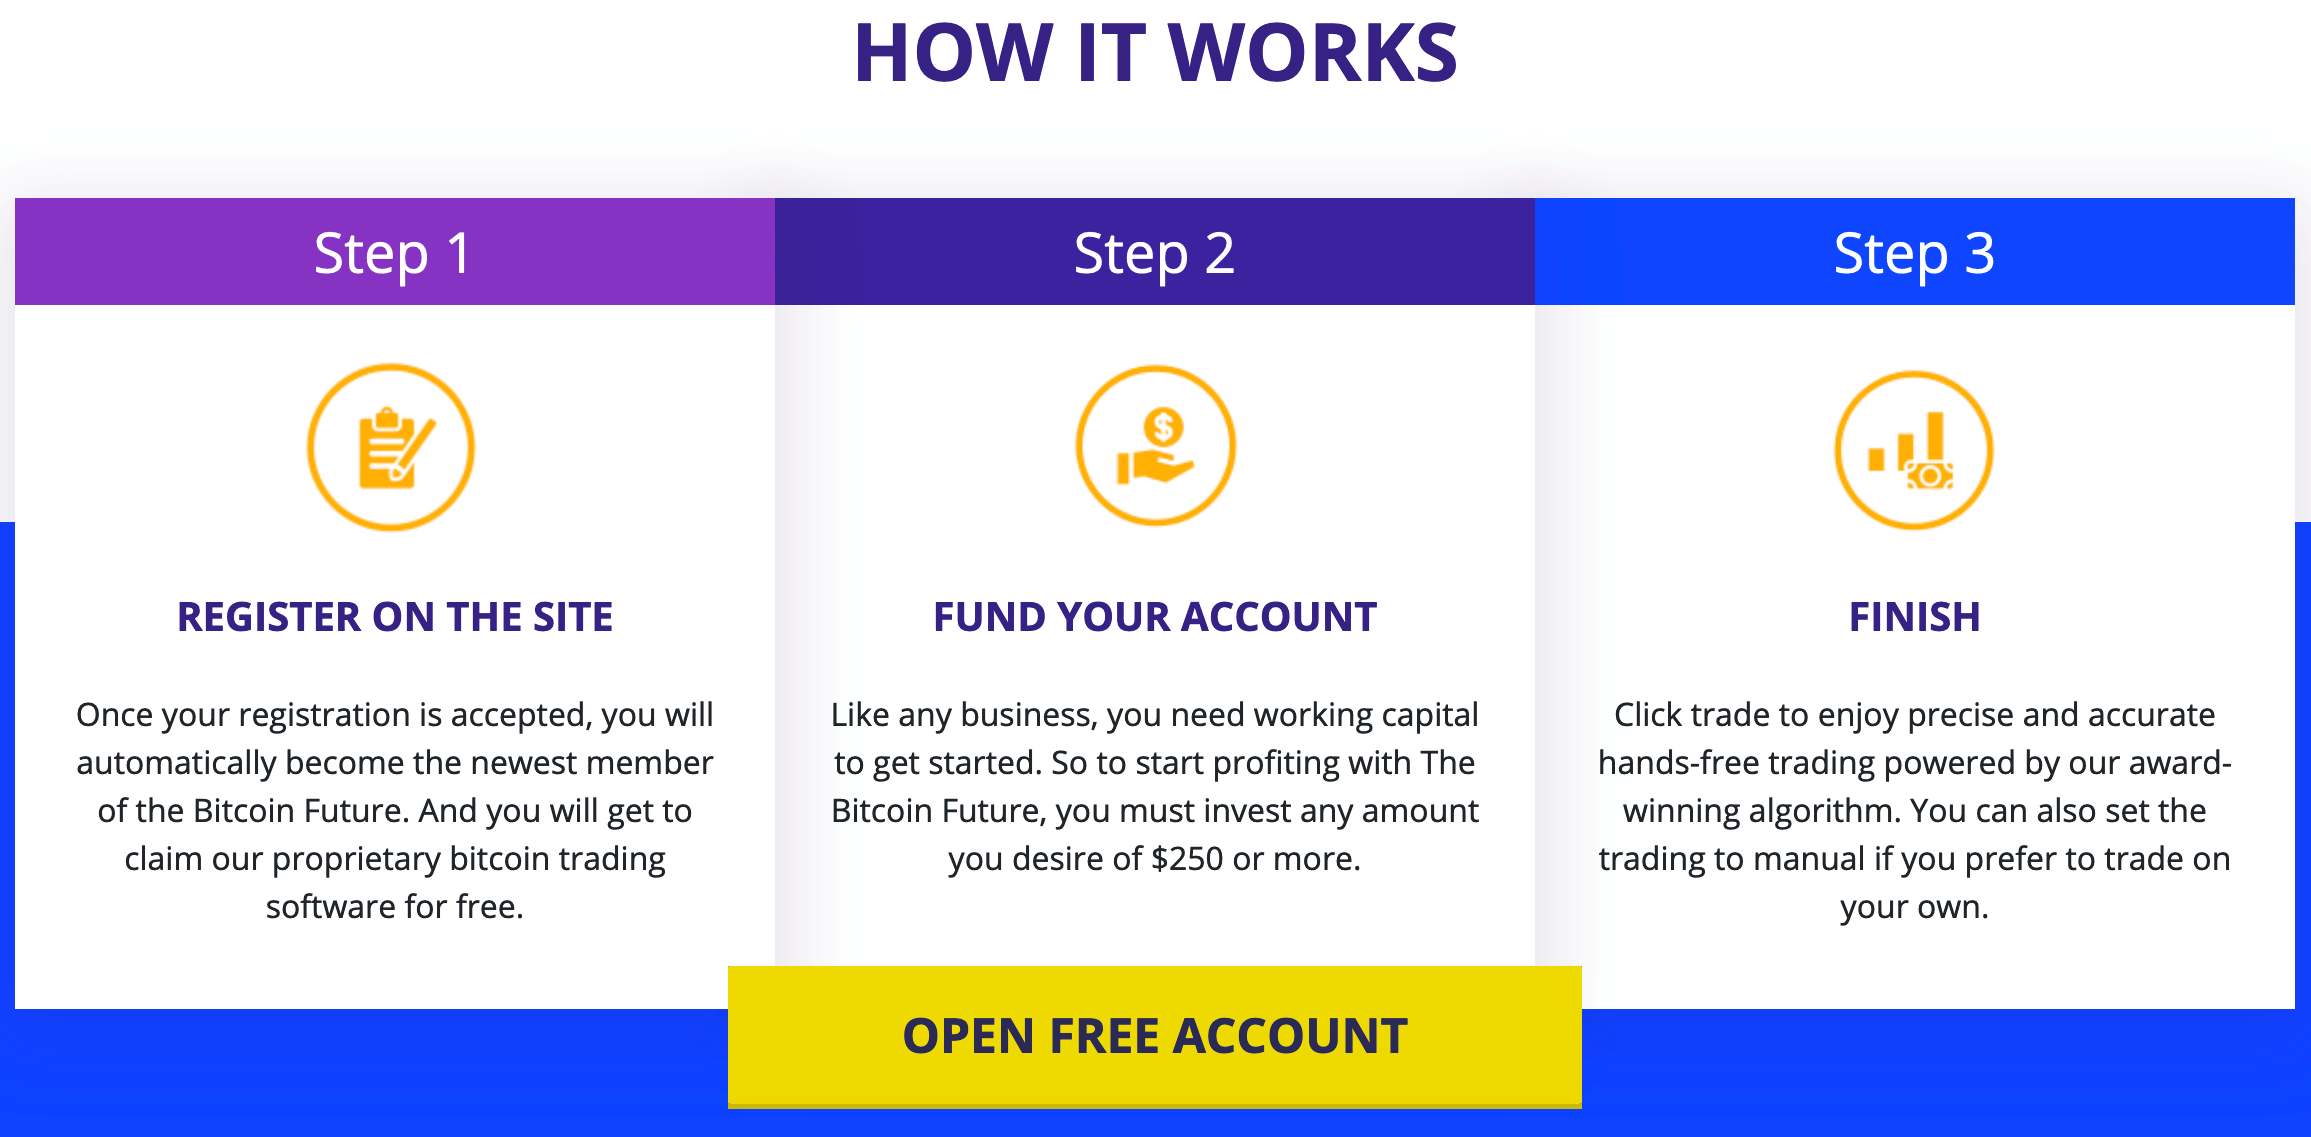 Guide of how Bitcoin Future works